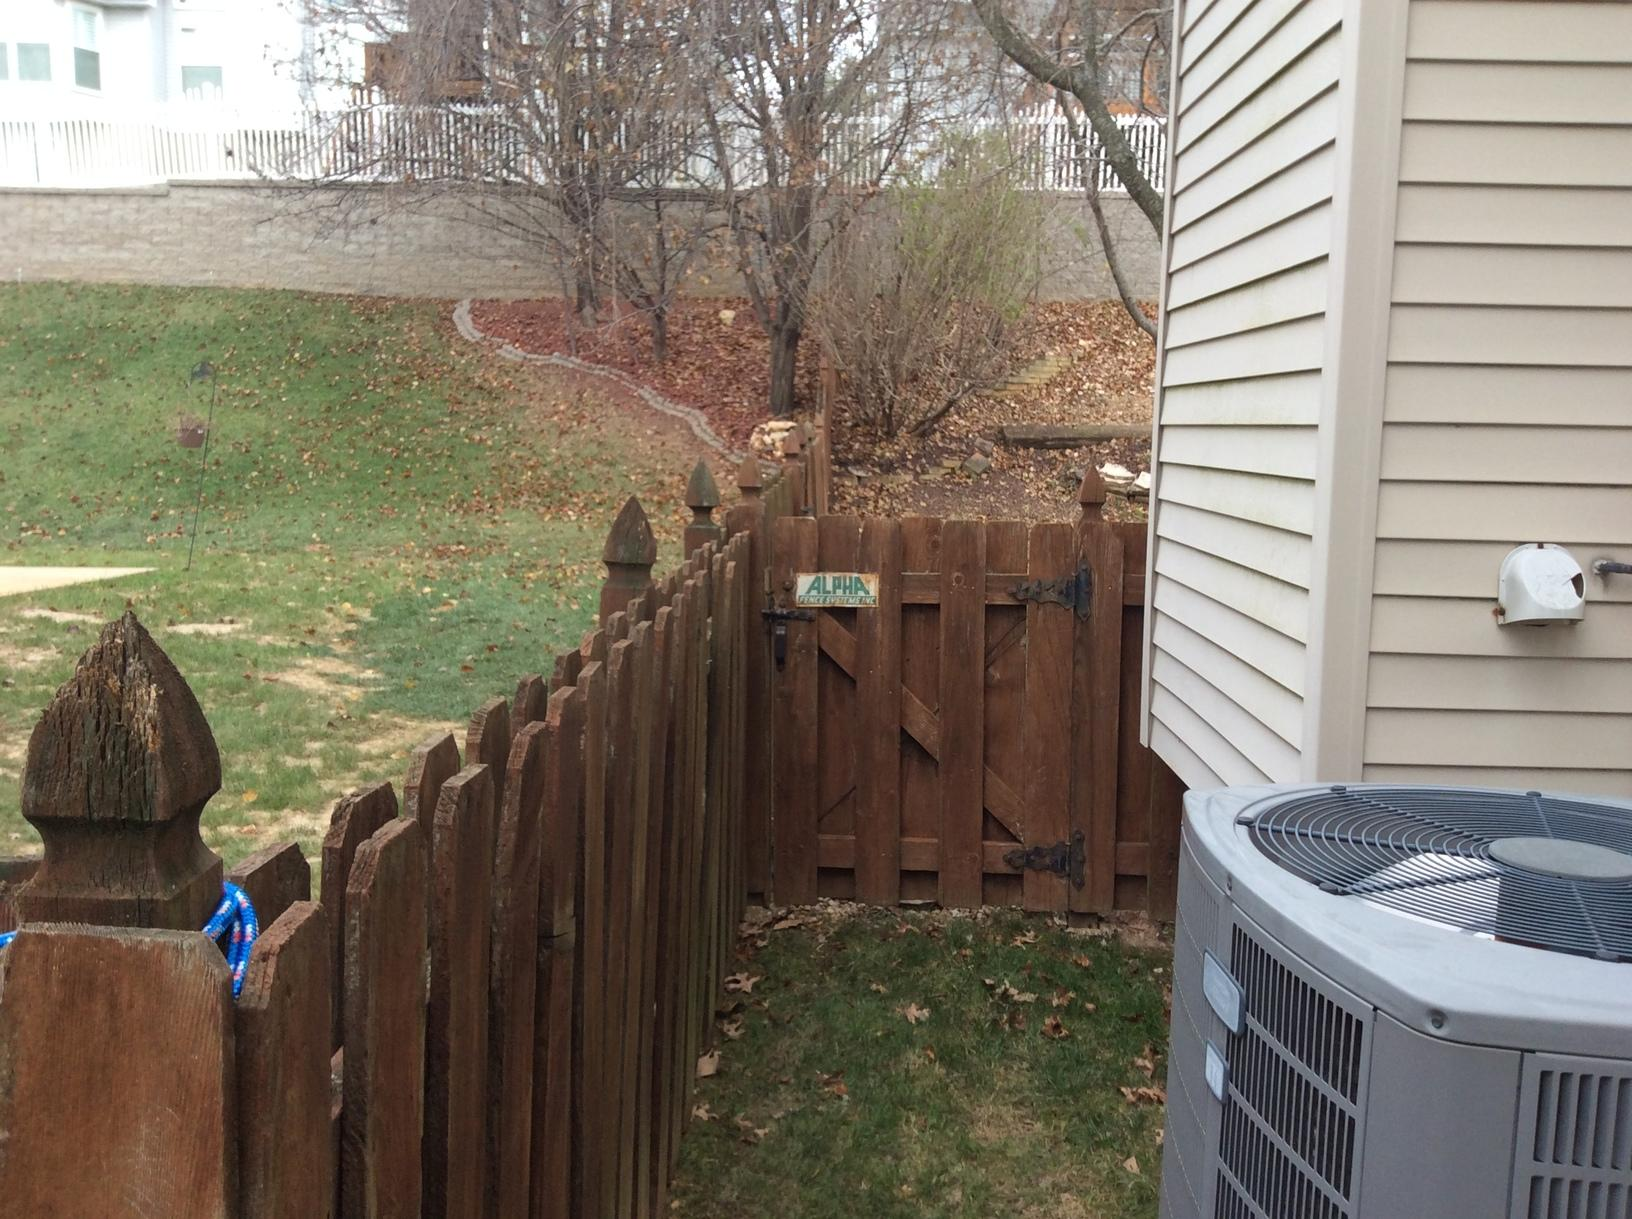 St Louis, MO Closed Top Vinyl Fence Installed - Before Photo